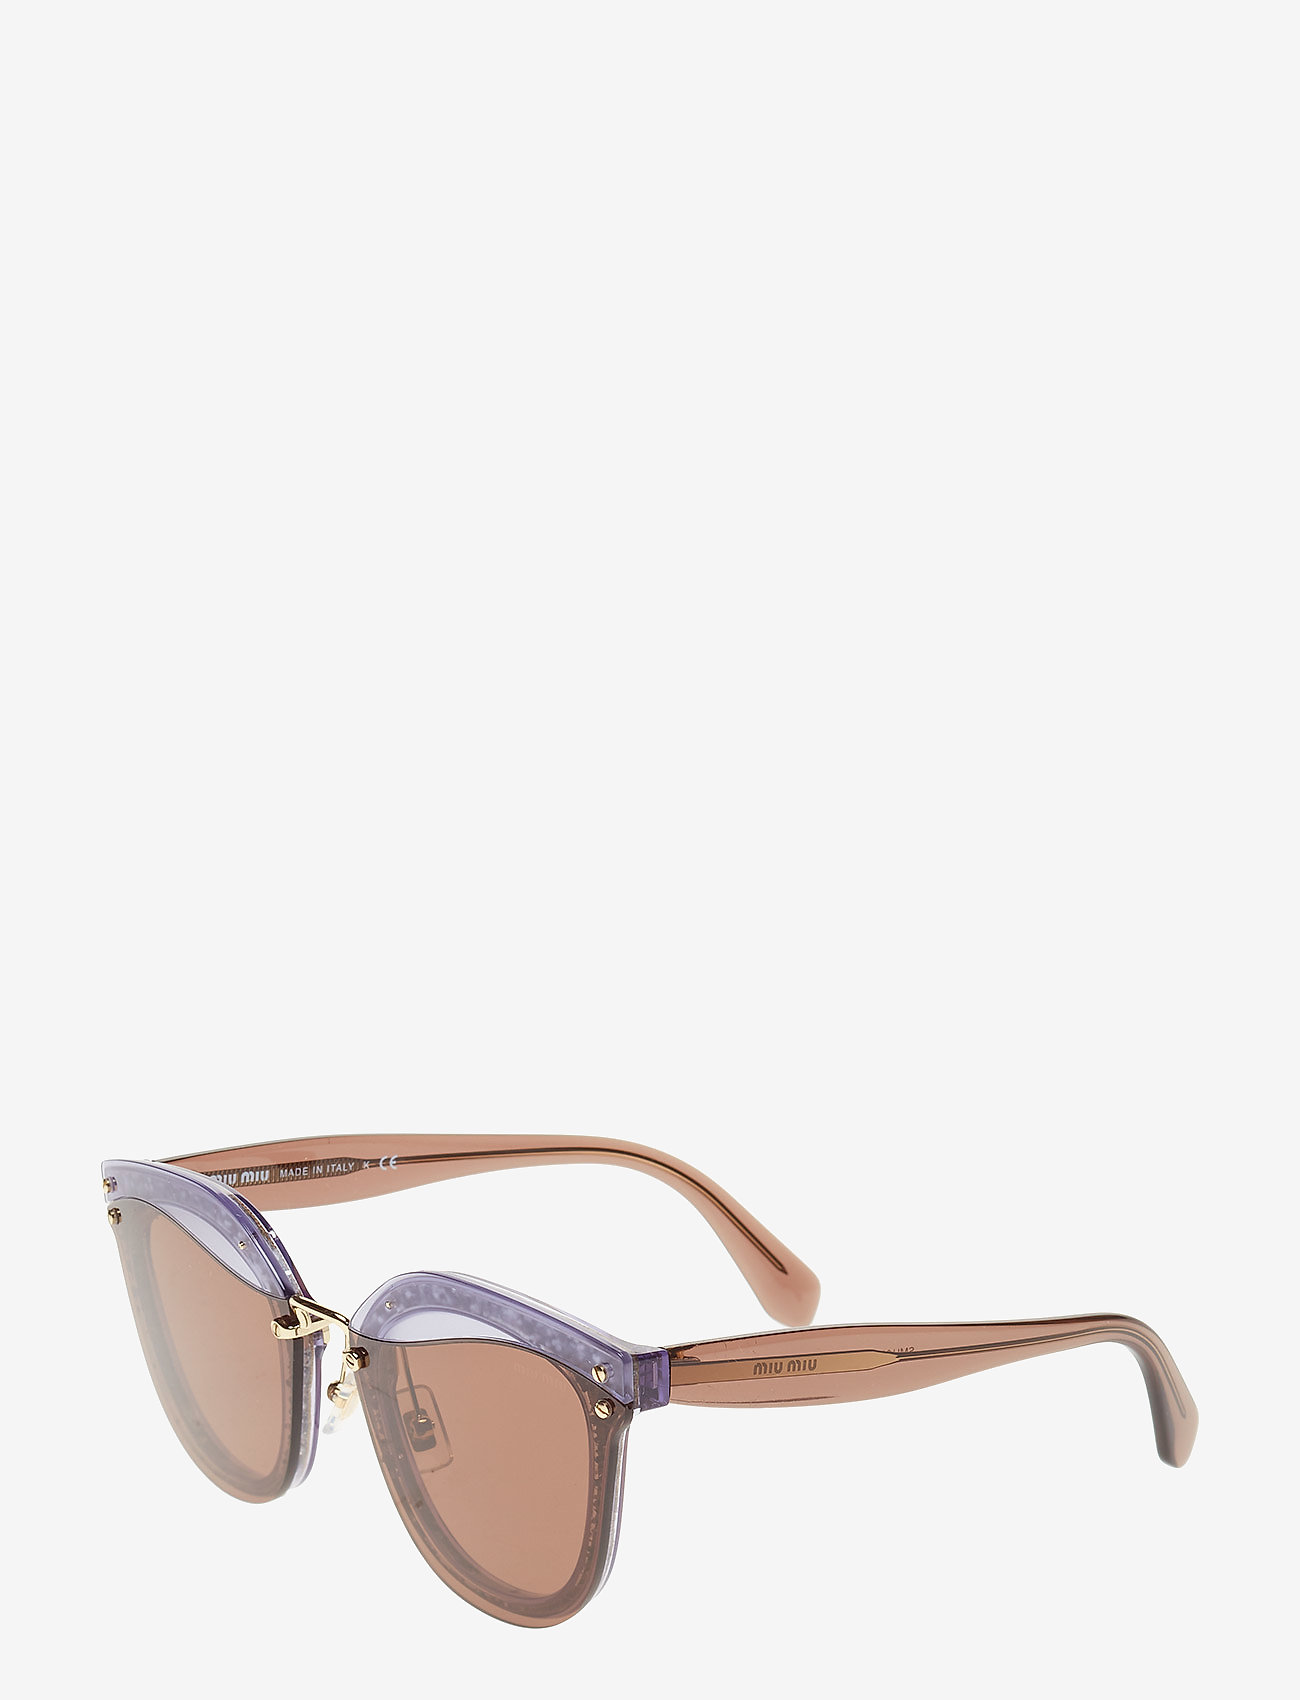 Miu Miu Sunglasses - WOMEN'S SUNGLASSES - cat-eye - transparente lilac/glitter